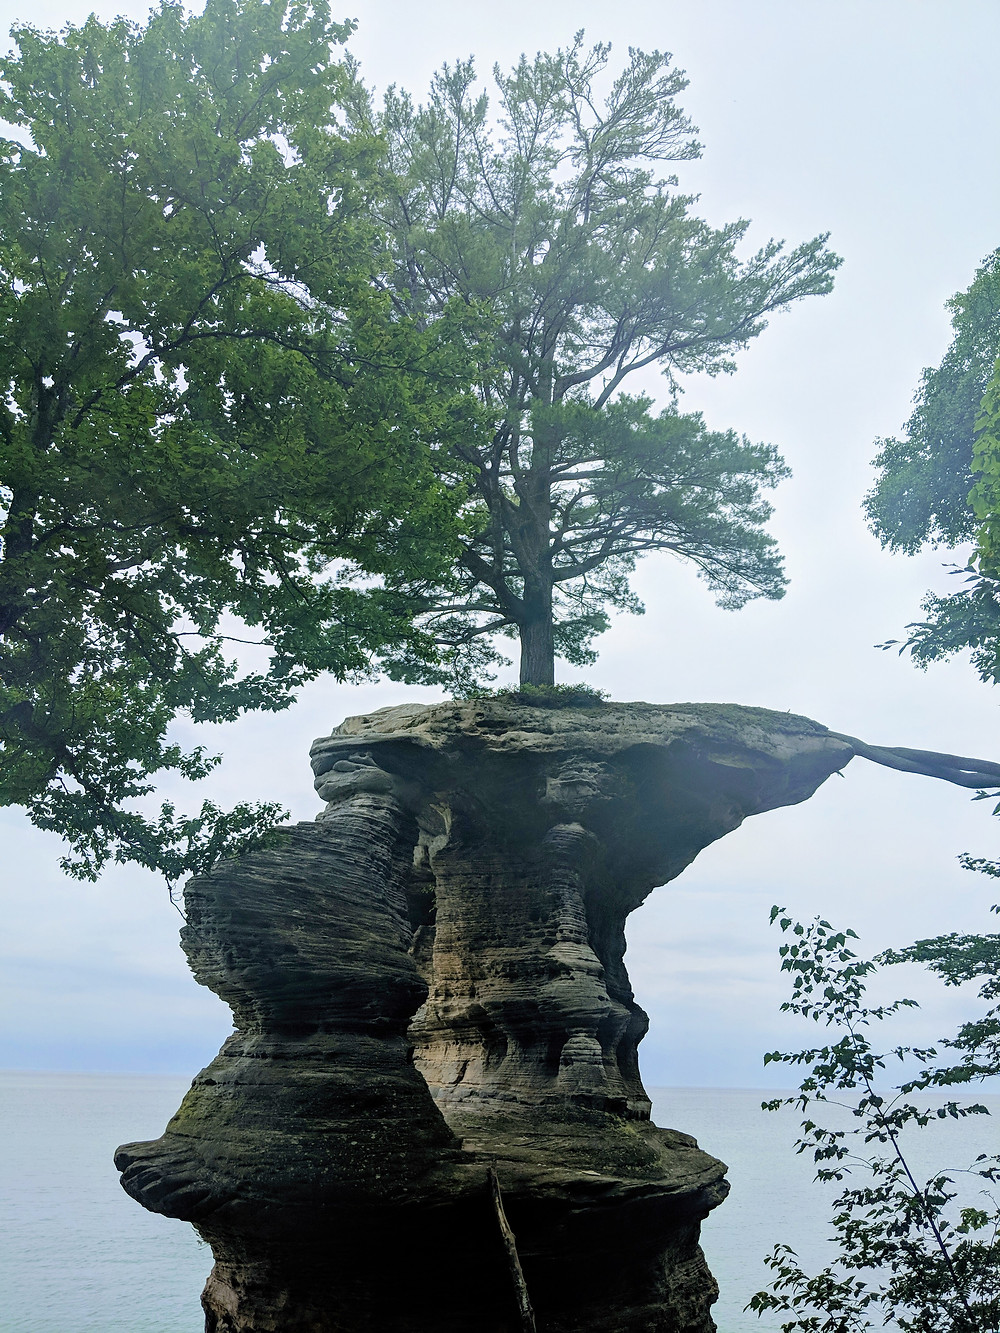 Chapel Rock - large rock formation with tree growing out of it